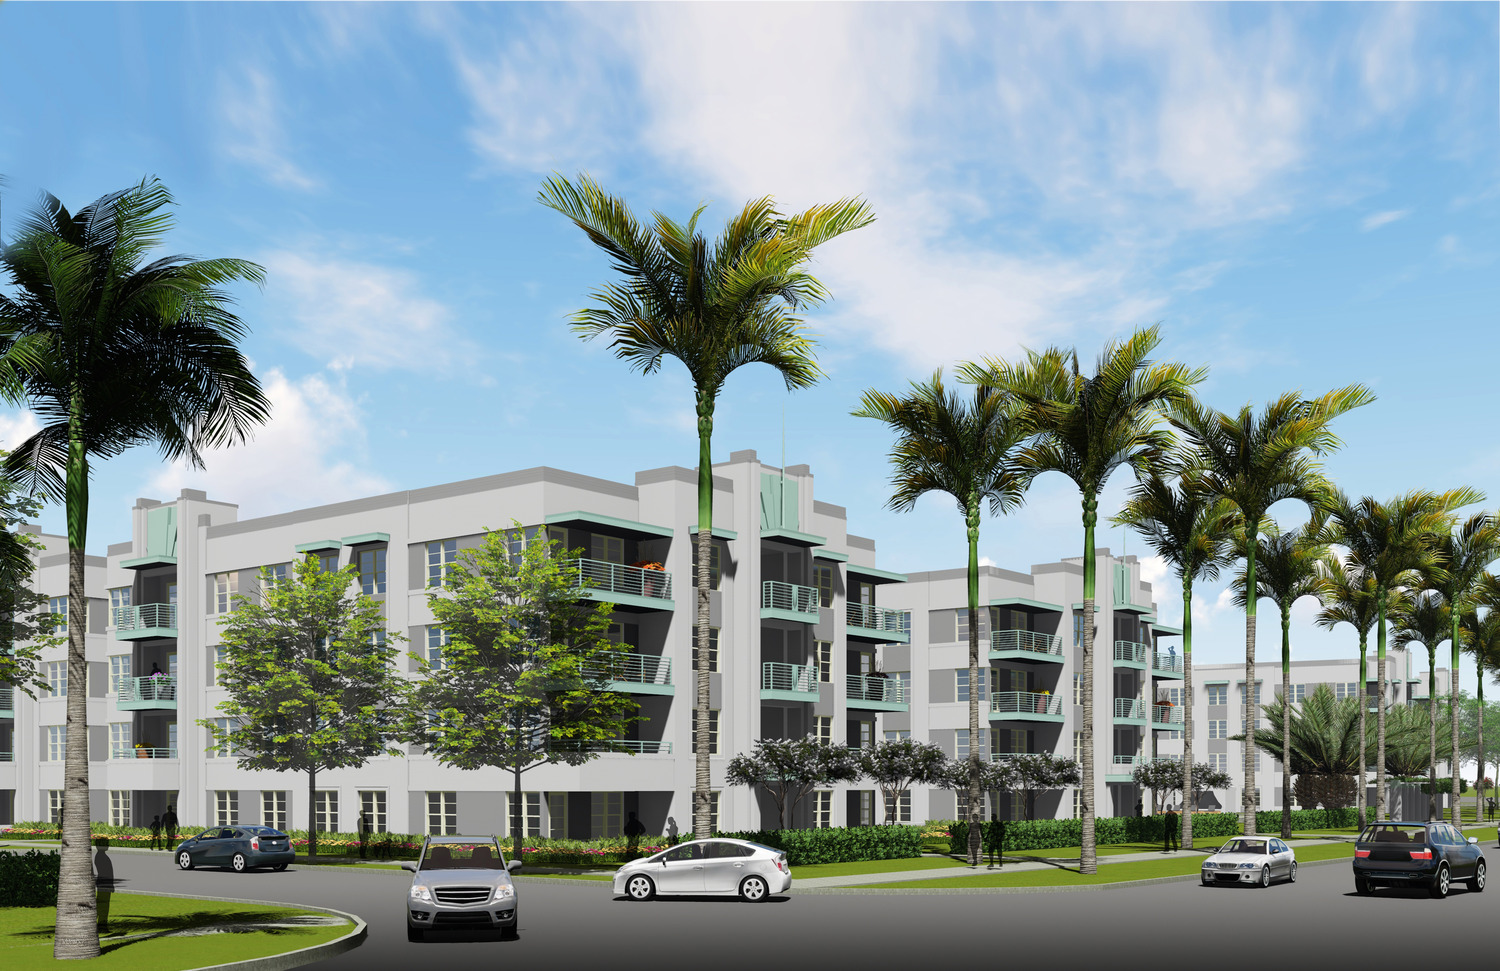 CBG builds Delamarre Apartments, a NGBS-Certified, 379-Unit Residential Community Across Four Buildings in Celebration, FL